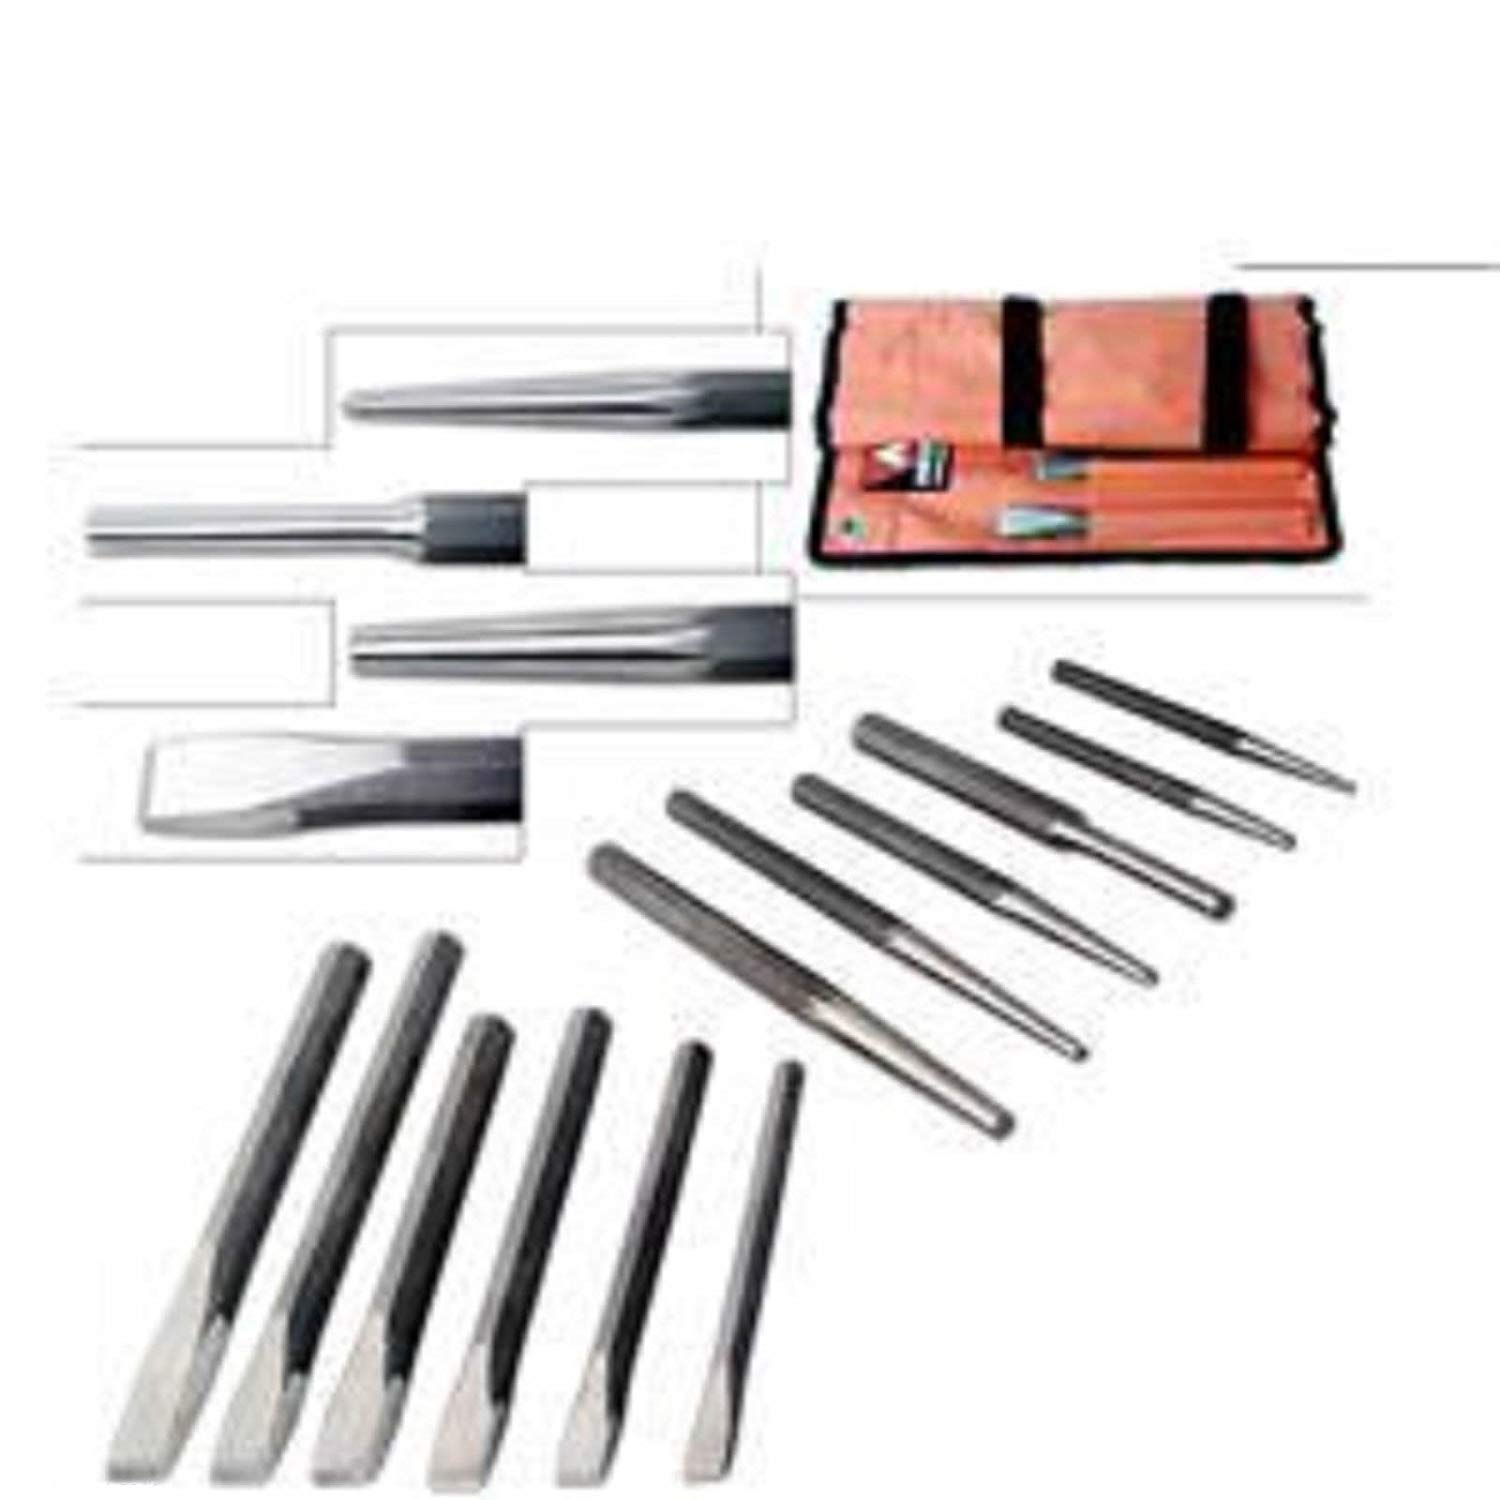 "ESKALEX>>12 pc Heavy Duty Punch & Chisel Set cold taper center pin w/Pouch and 6 Cold Chisels: 1/2""x6"", 5/8""x7"", 3/4""x8"", 7/8""x8"", 7/8""x10"", 1""x10""3 Taper Punches: 1/8""x6"", 7/32""x10"", 3/8""x10"""